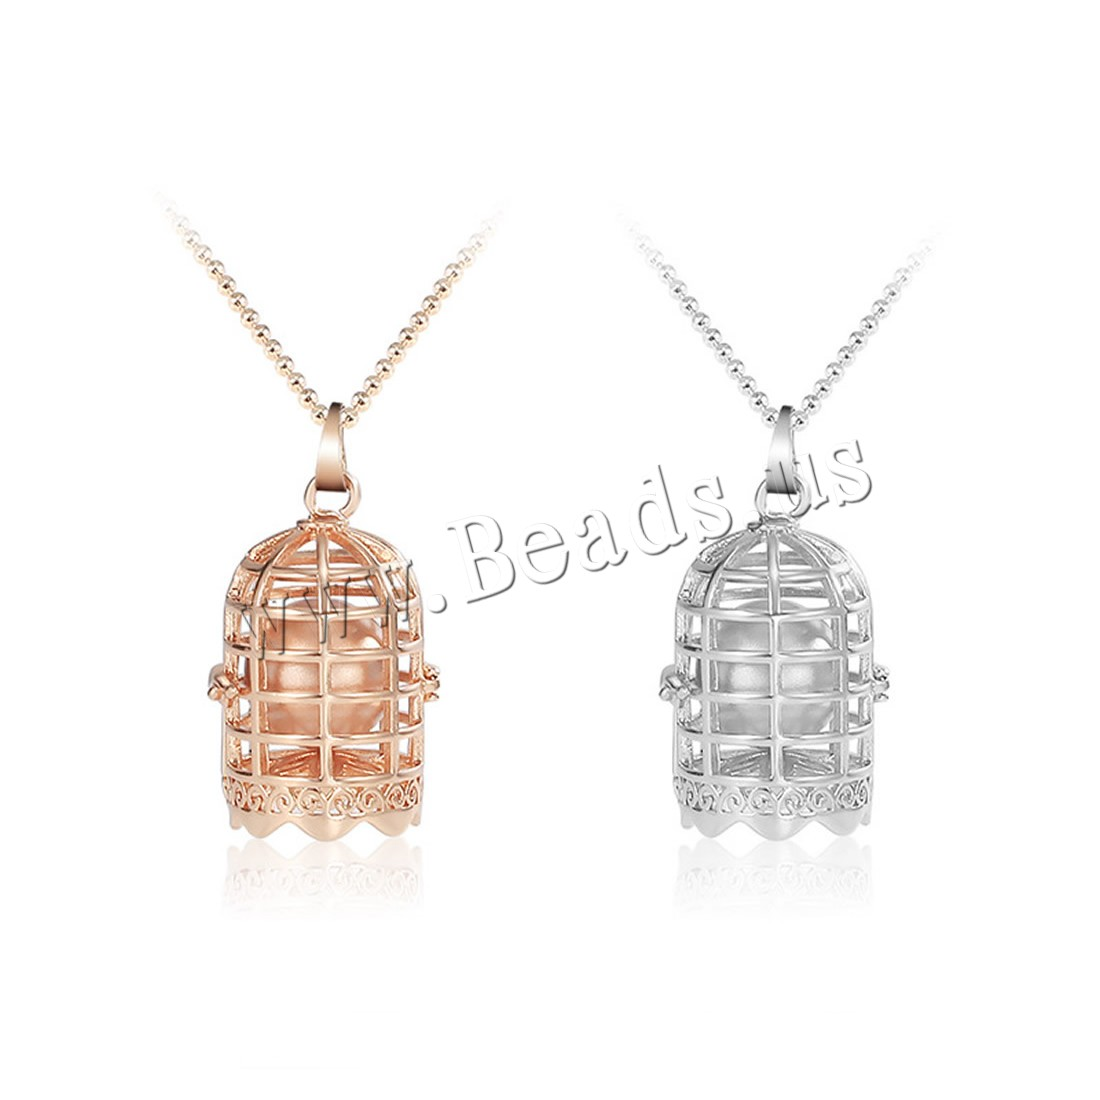 Buy Fashion Locket Necklace Zinc Alloy ABS Plastic Pearl & iron chain 5cm extender chain plated ball chain & woman & hollow colors choice lead & cadmium free 38x24mm Sold Per Approx 17.5 Inch Strand